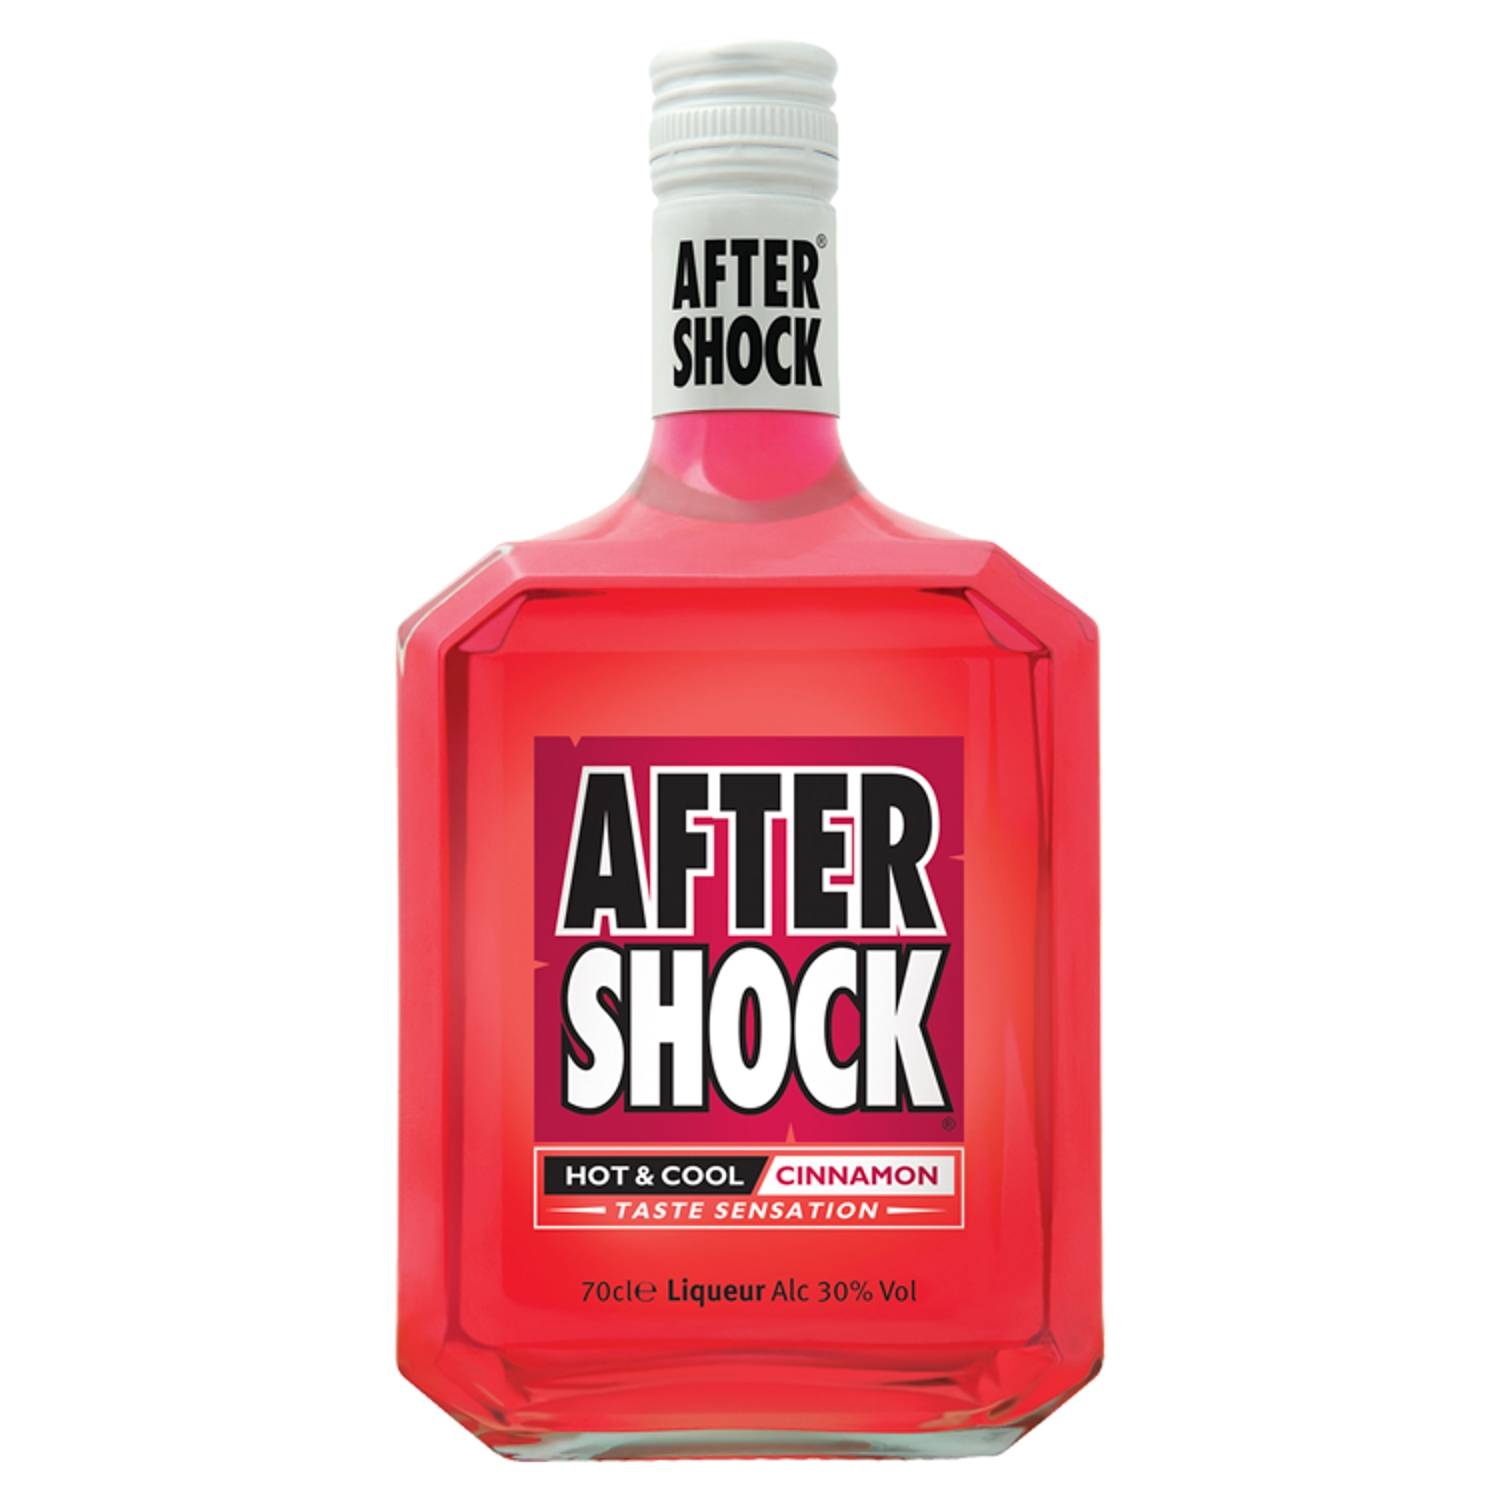 Aftershock Red Hot and Cool Cinnamon Liqueur, 70cl